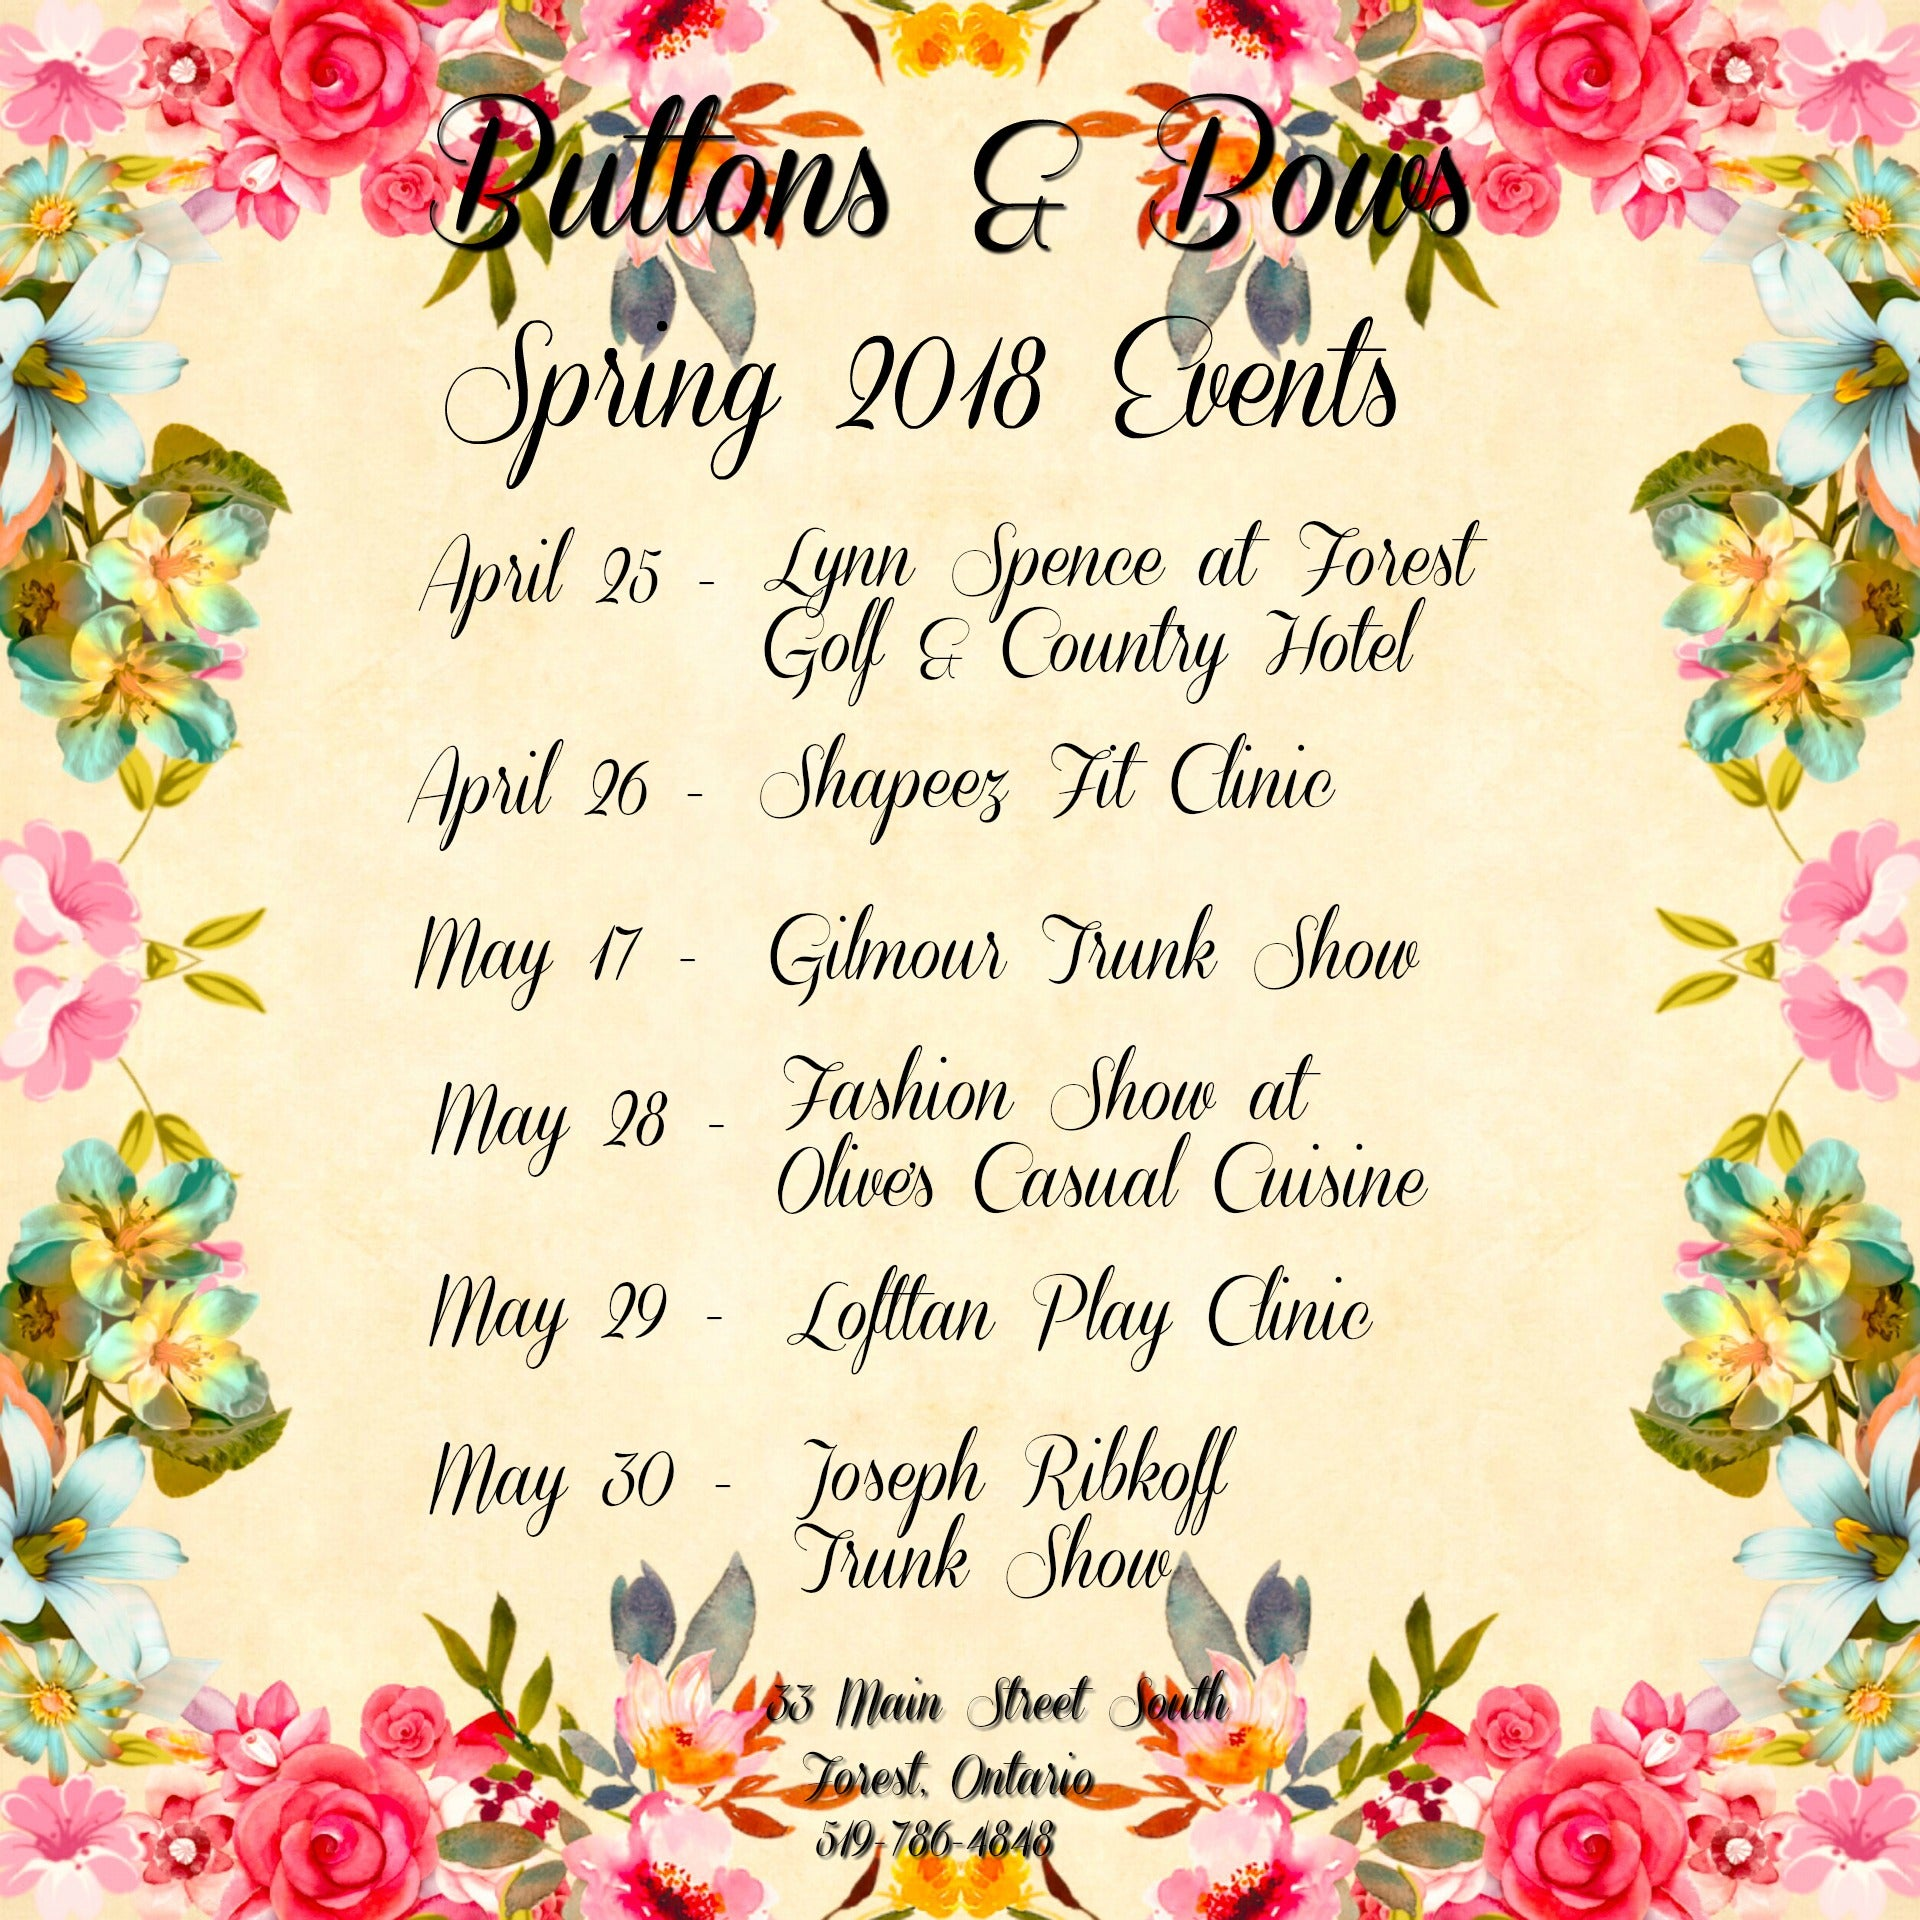 Buttons & Bows Spring 2018 Events